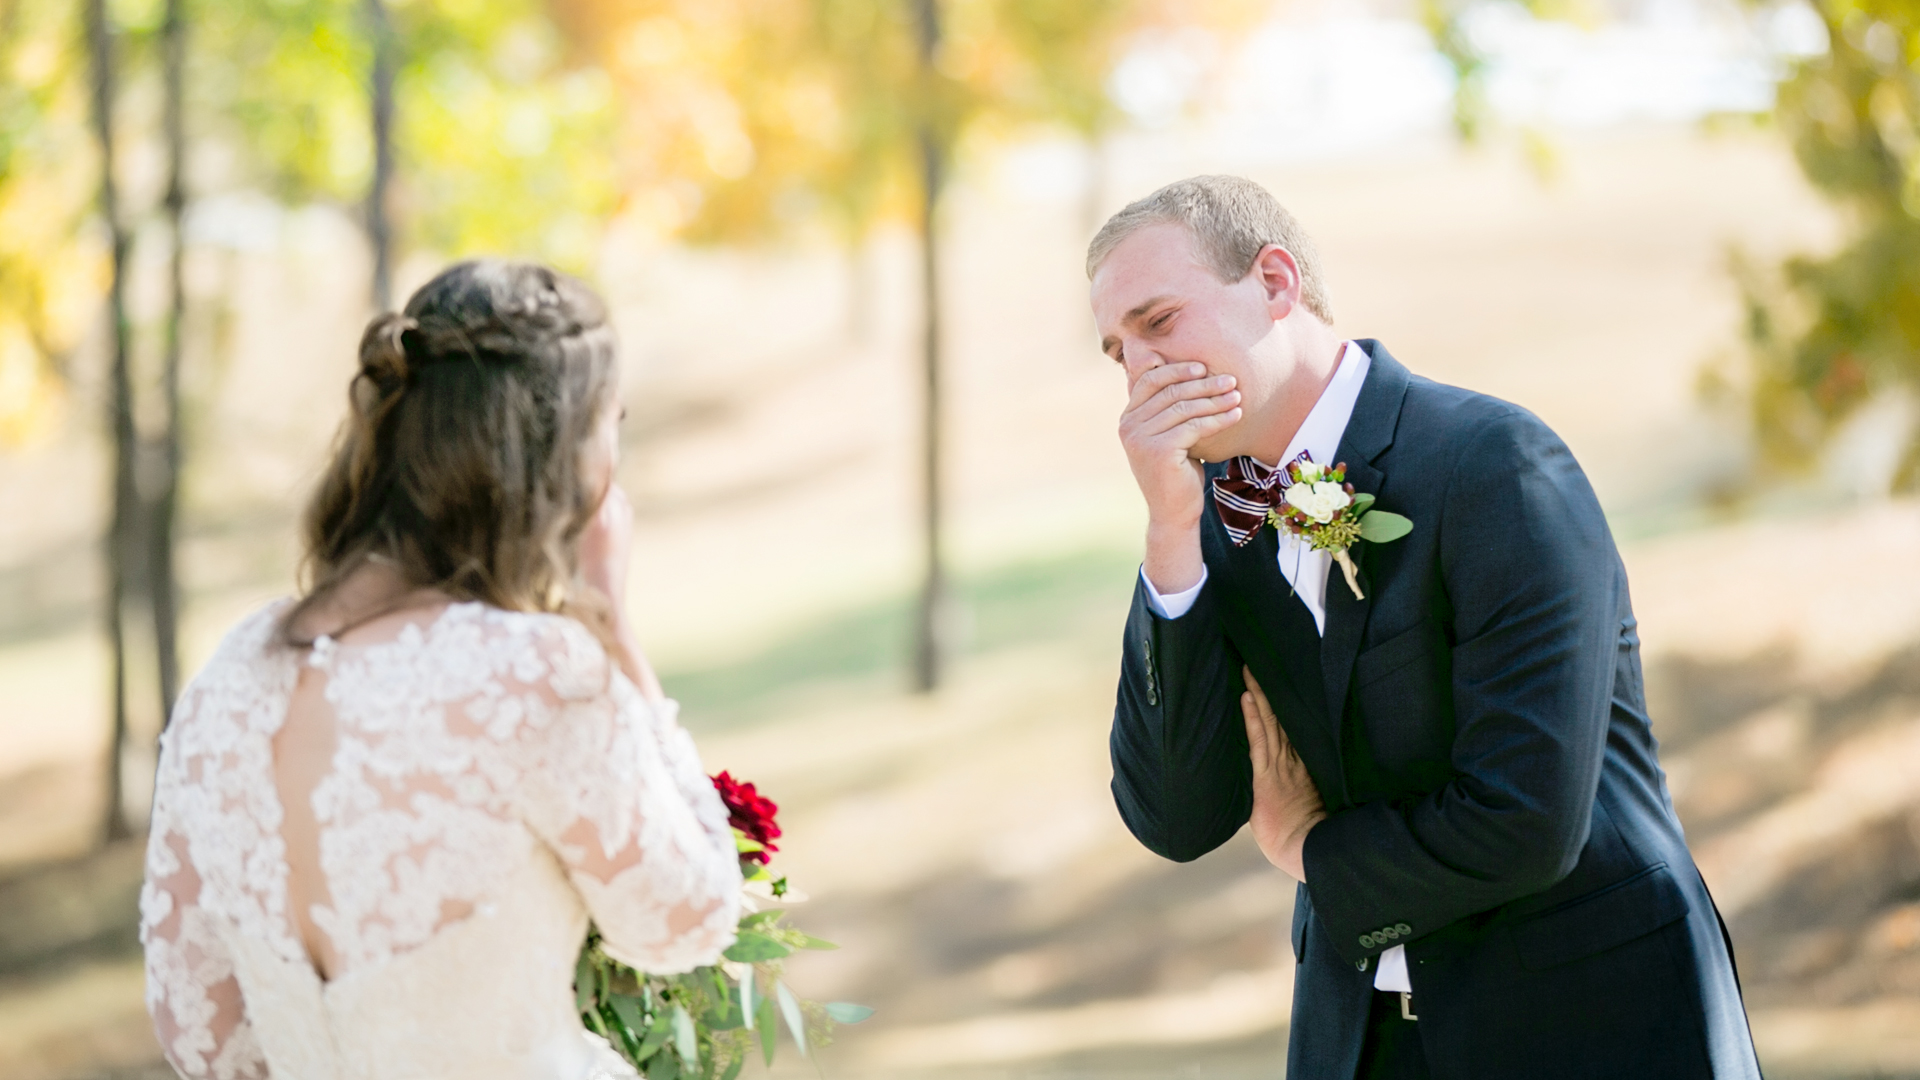 7 First Look Photo Mistakes Not To Make - Make The Most Of The Moment With These Tips